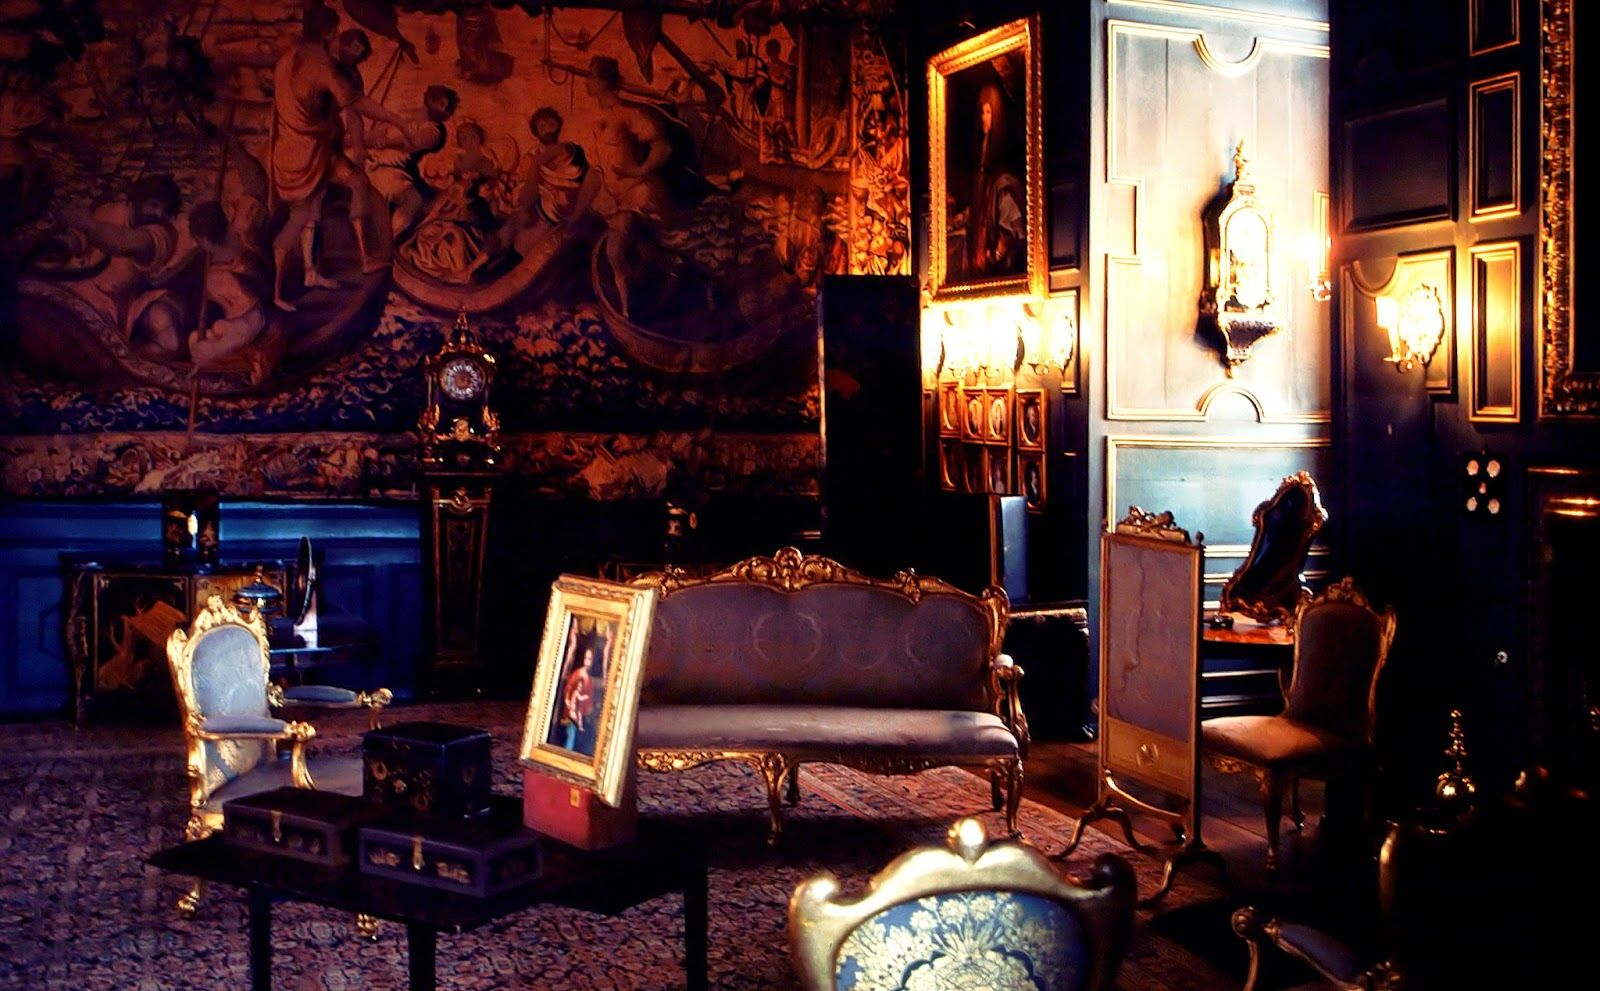 Medieval Castle Interior   loveisspeed.....: Powis Castle is a medieval castle, fortress and ...